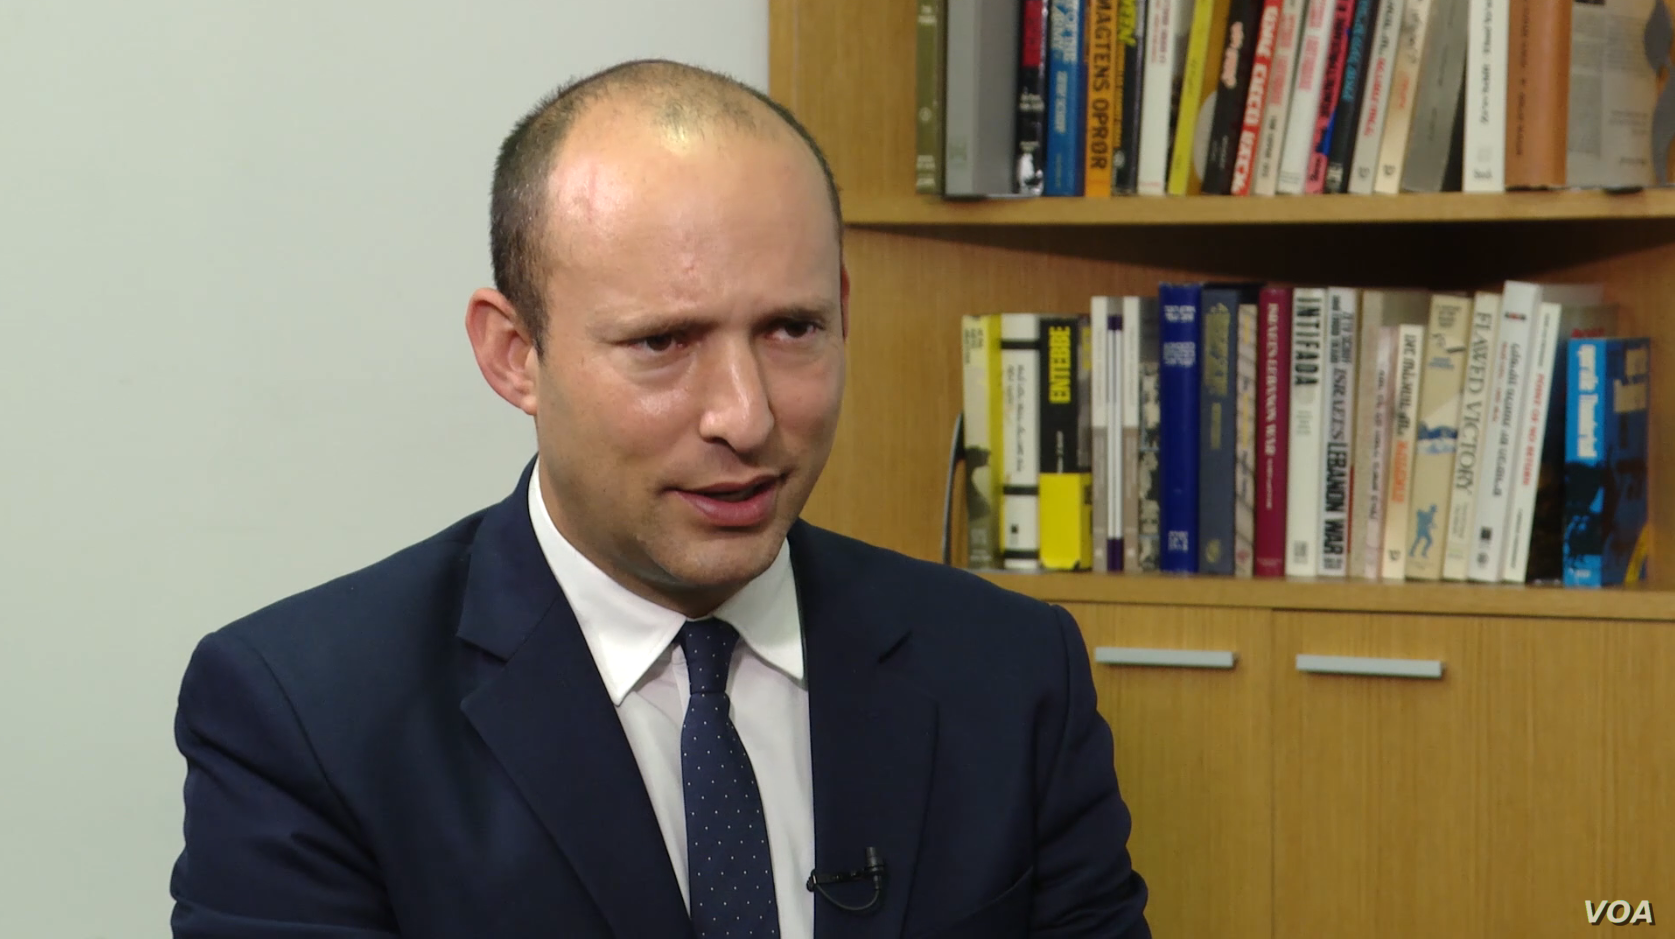 Israeli Education Minister Naftali Bennett talks to VOA Persian at Tel Aviv University's Institute for National Security Studies on October 8, 2018.